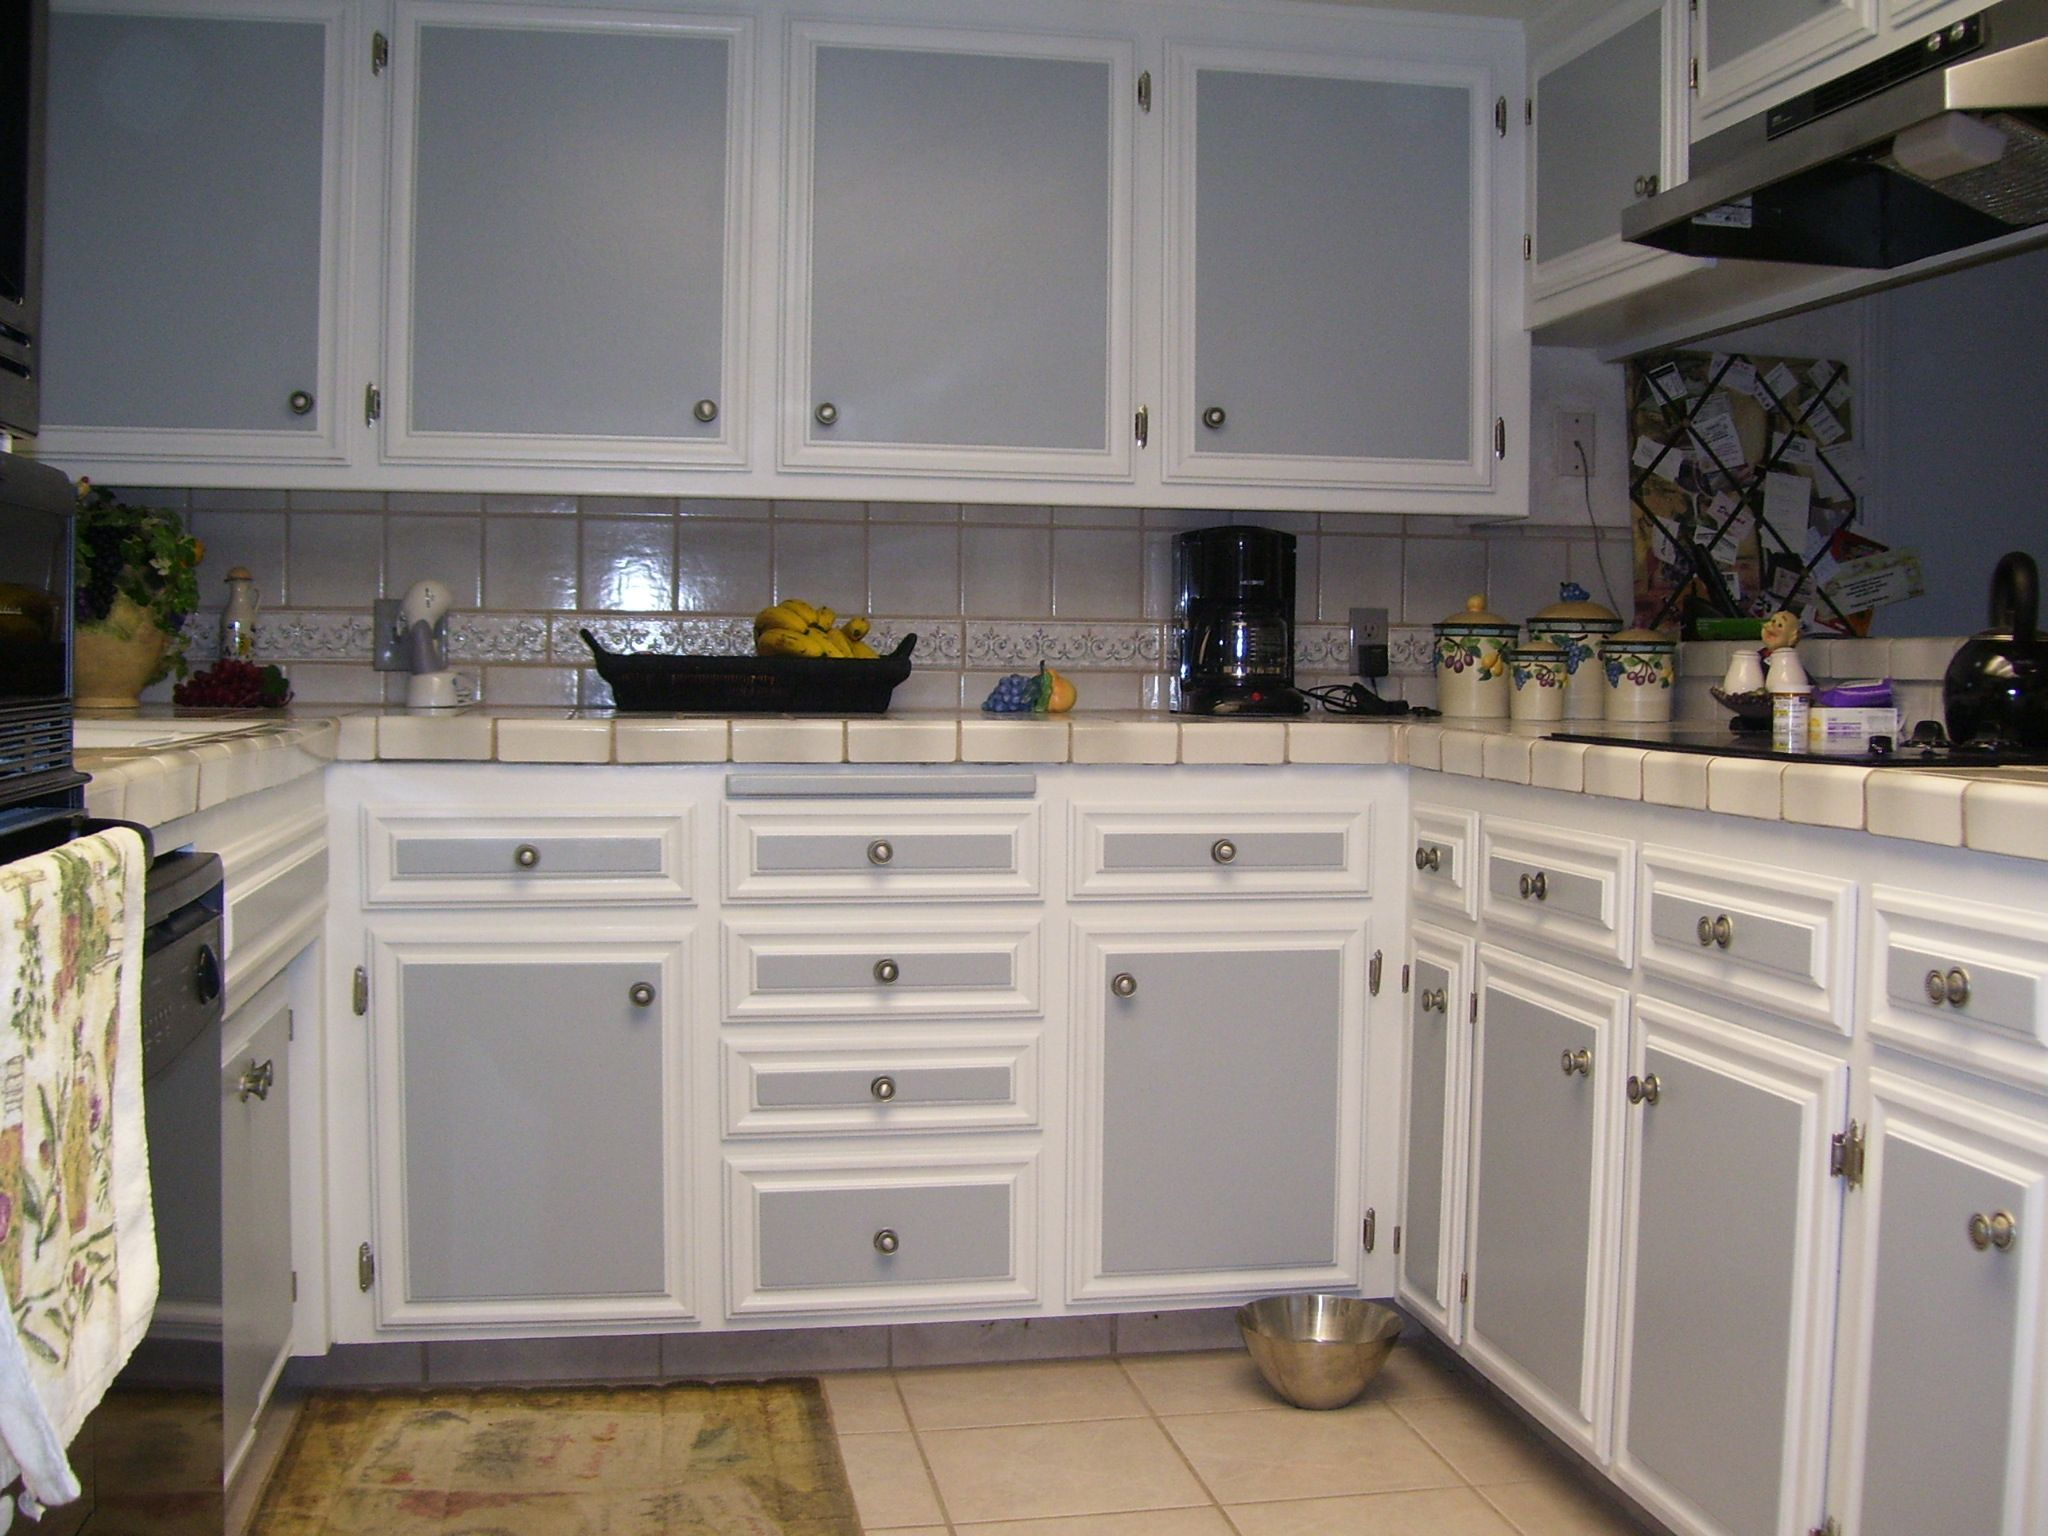 Kitchen White Kitchen Cabinet Grey Door Brown Tile Floor